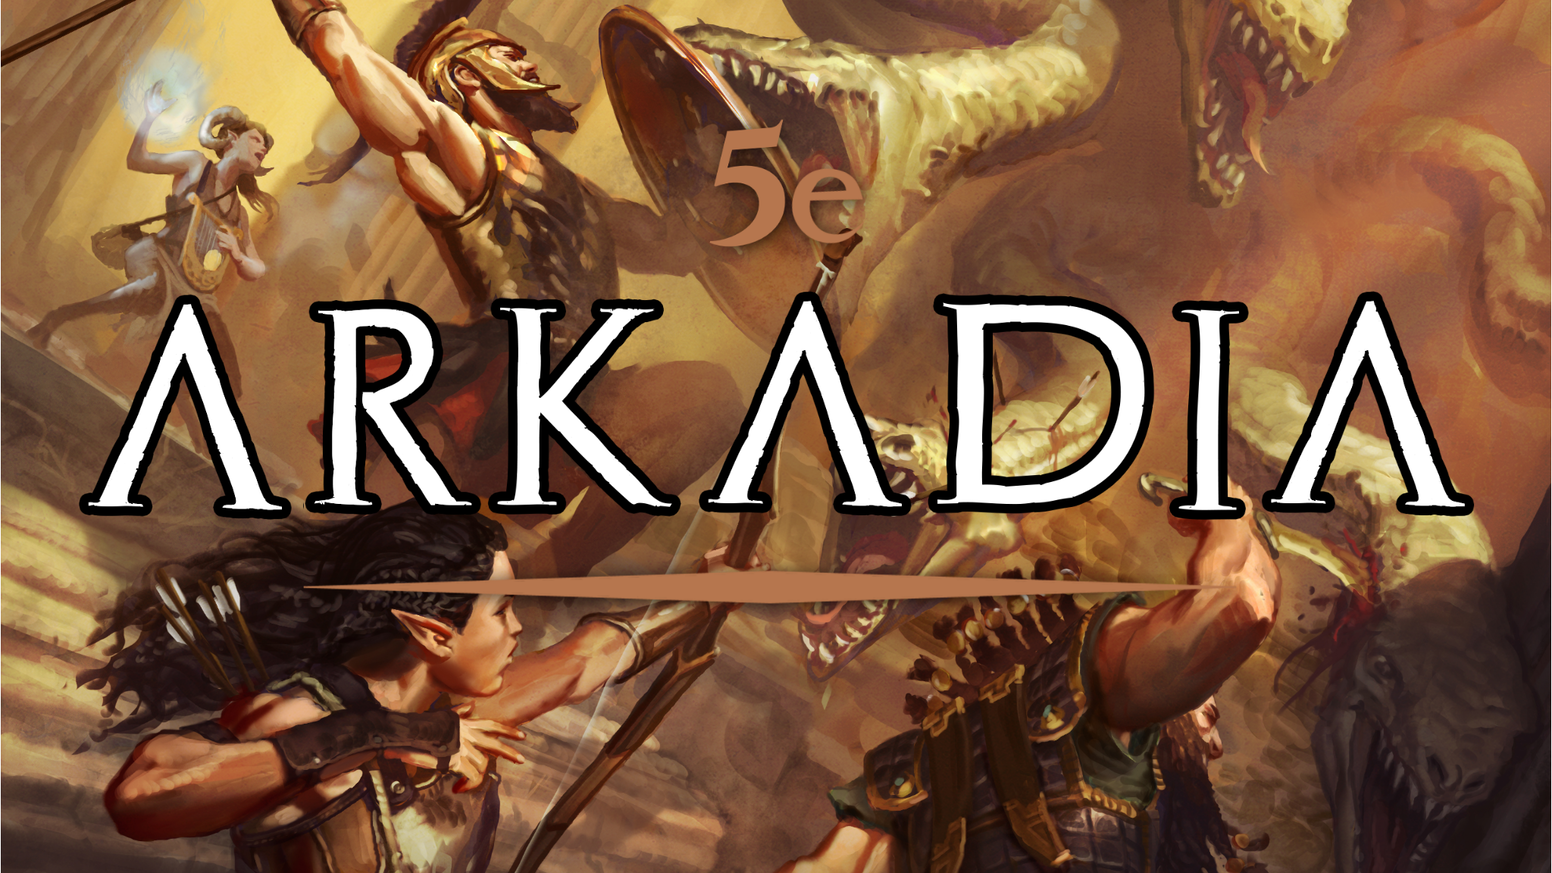 A new setting exclusively for 5e - inspired by the history and myths of Ancient Greece